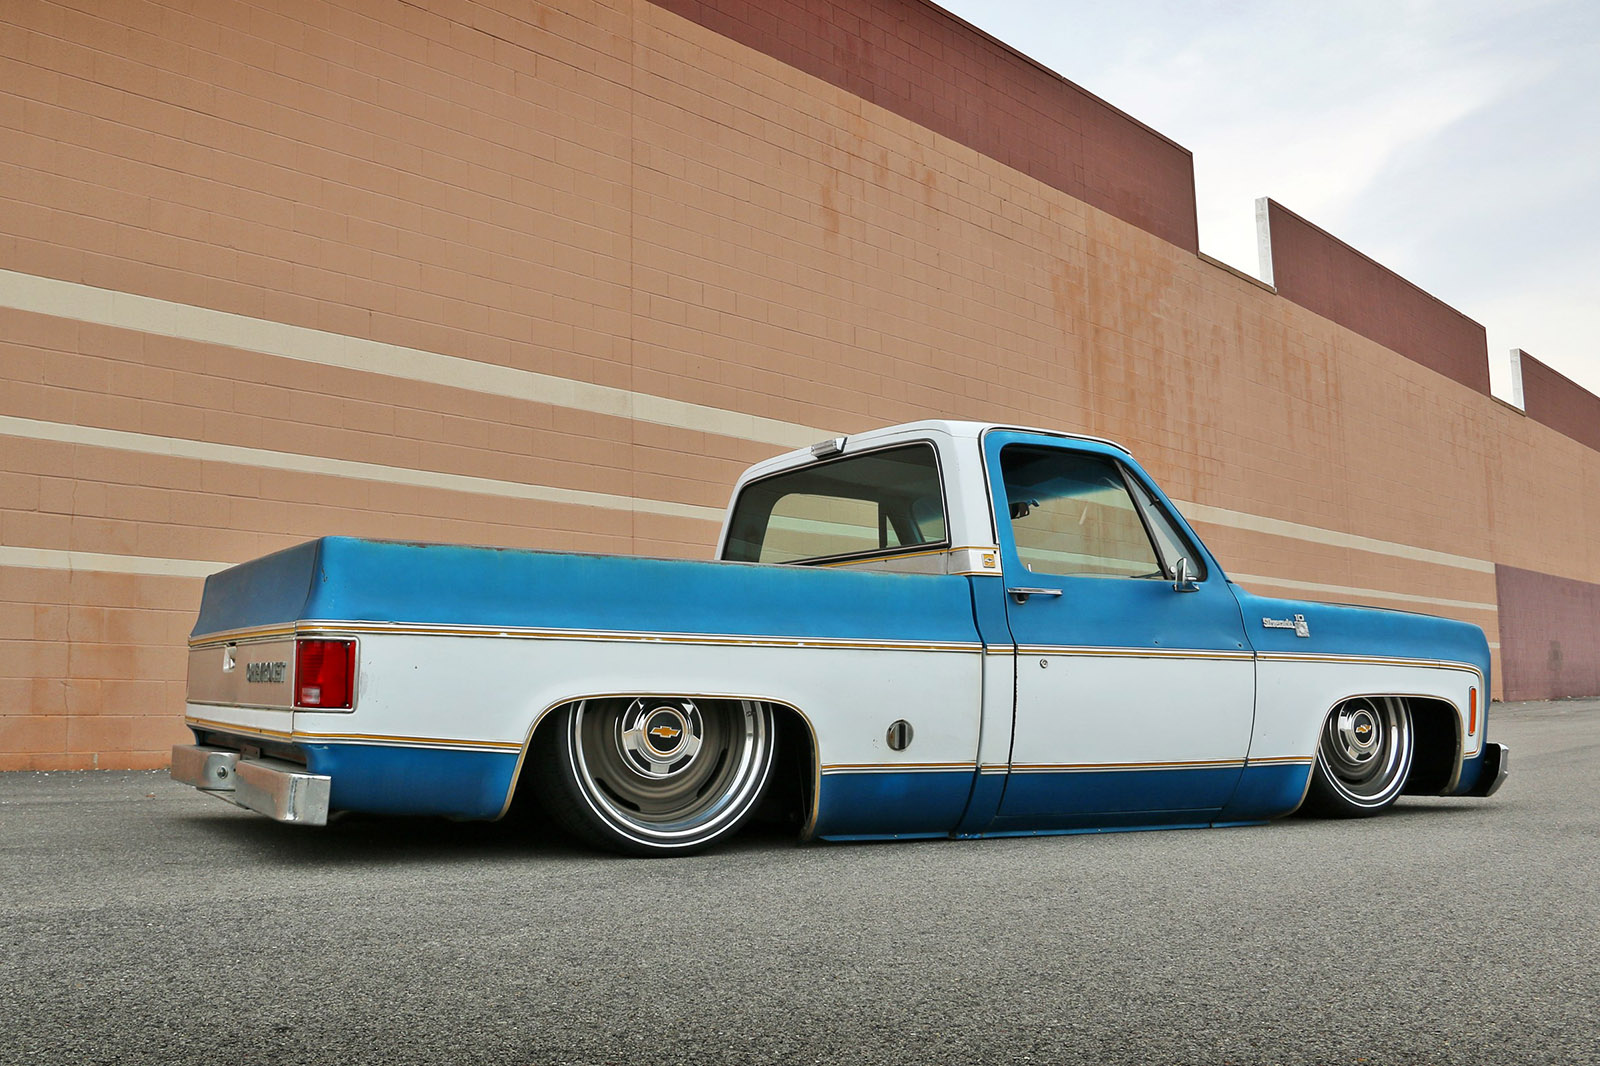 Chevy C10 With A 408 Ci Lsx Engine Swap Depot 1966 Truck Slammed As Mentioned Before The Received One Of Their 1973 1987 Spec Chassis These Come In Two Versions Regular Ride Height And Version